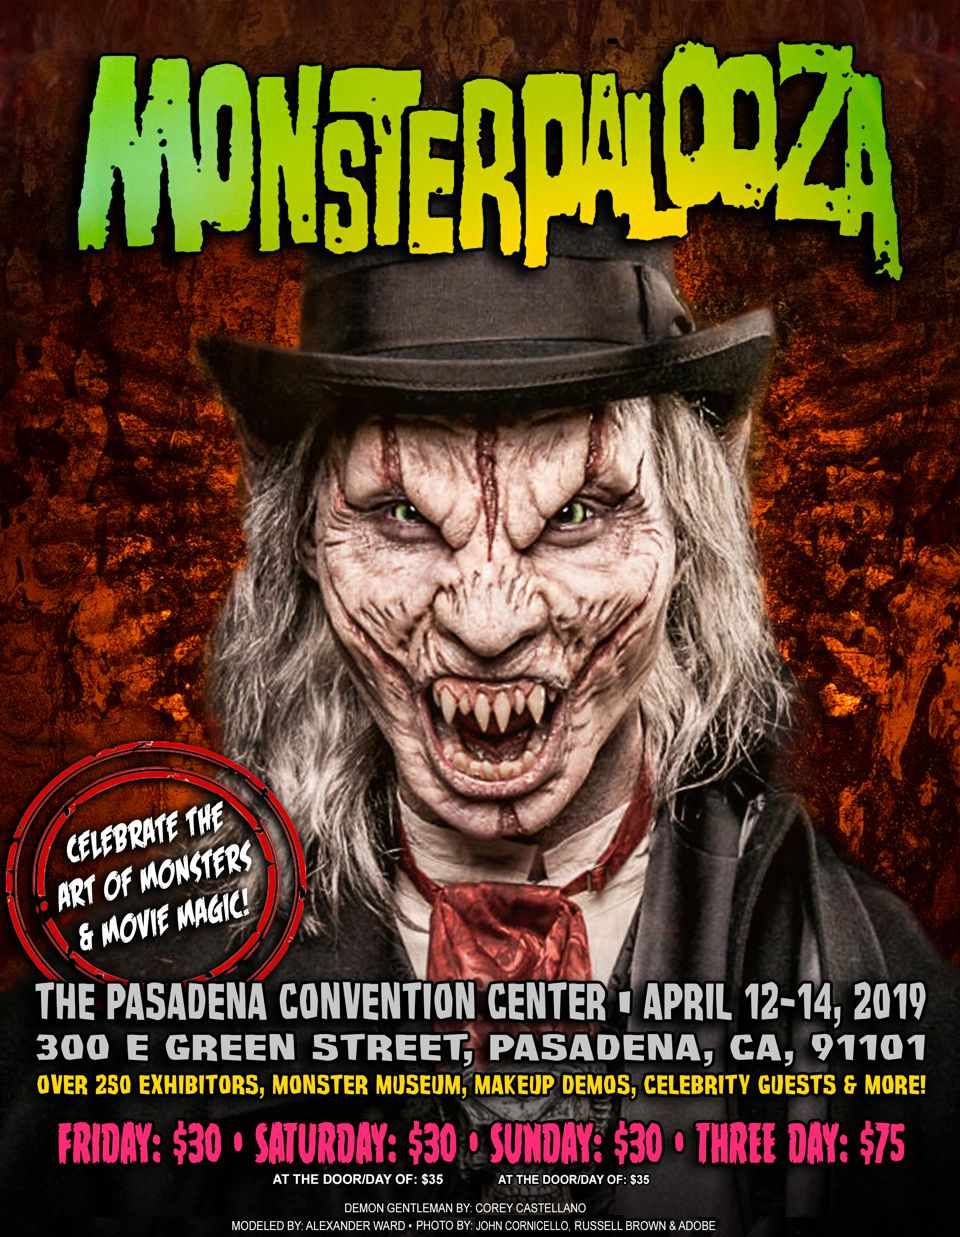 monsterpalooza2019-v003.jpg